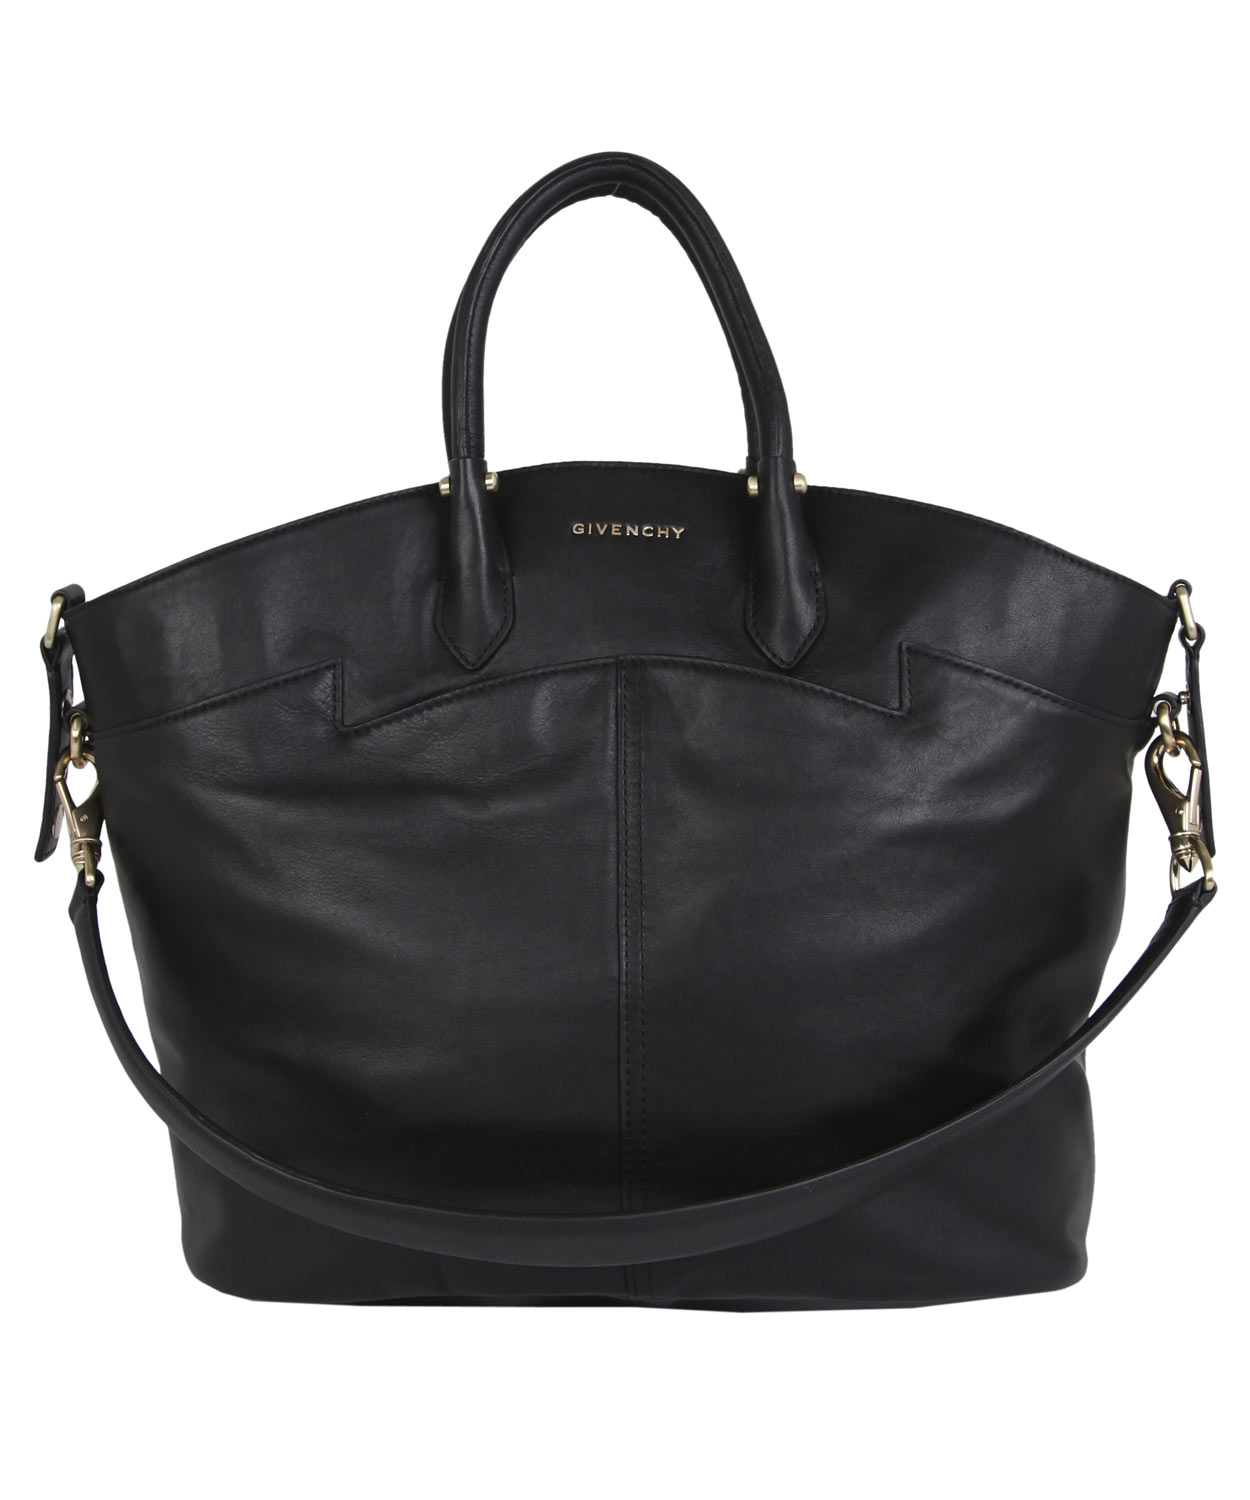 Givenchy Large Black Leather Tote Bag in Black